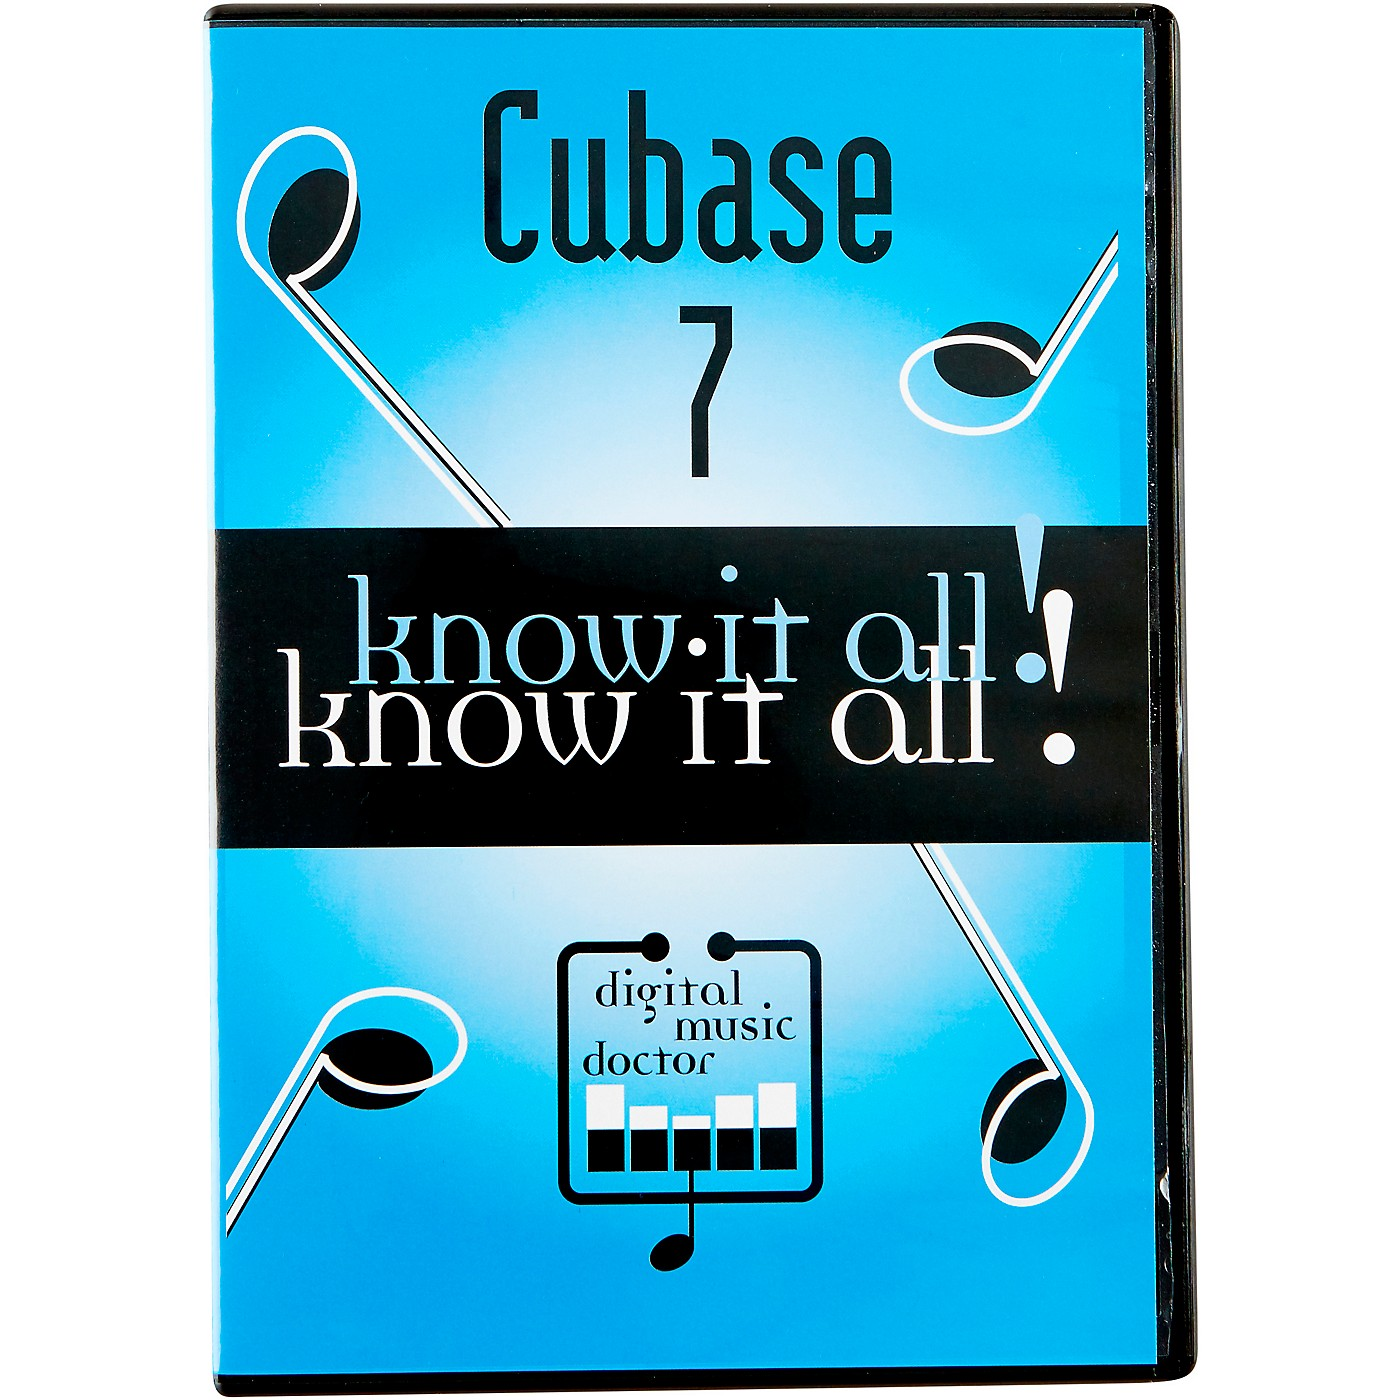 Digital Music Doctor Cubase 7 Know It All! Video Tutorial thumbnail